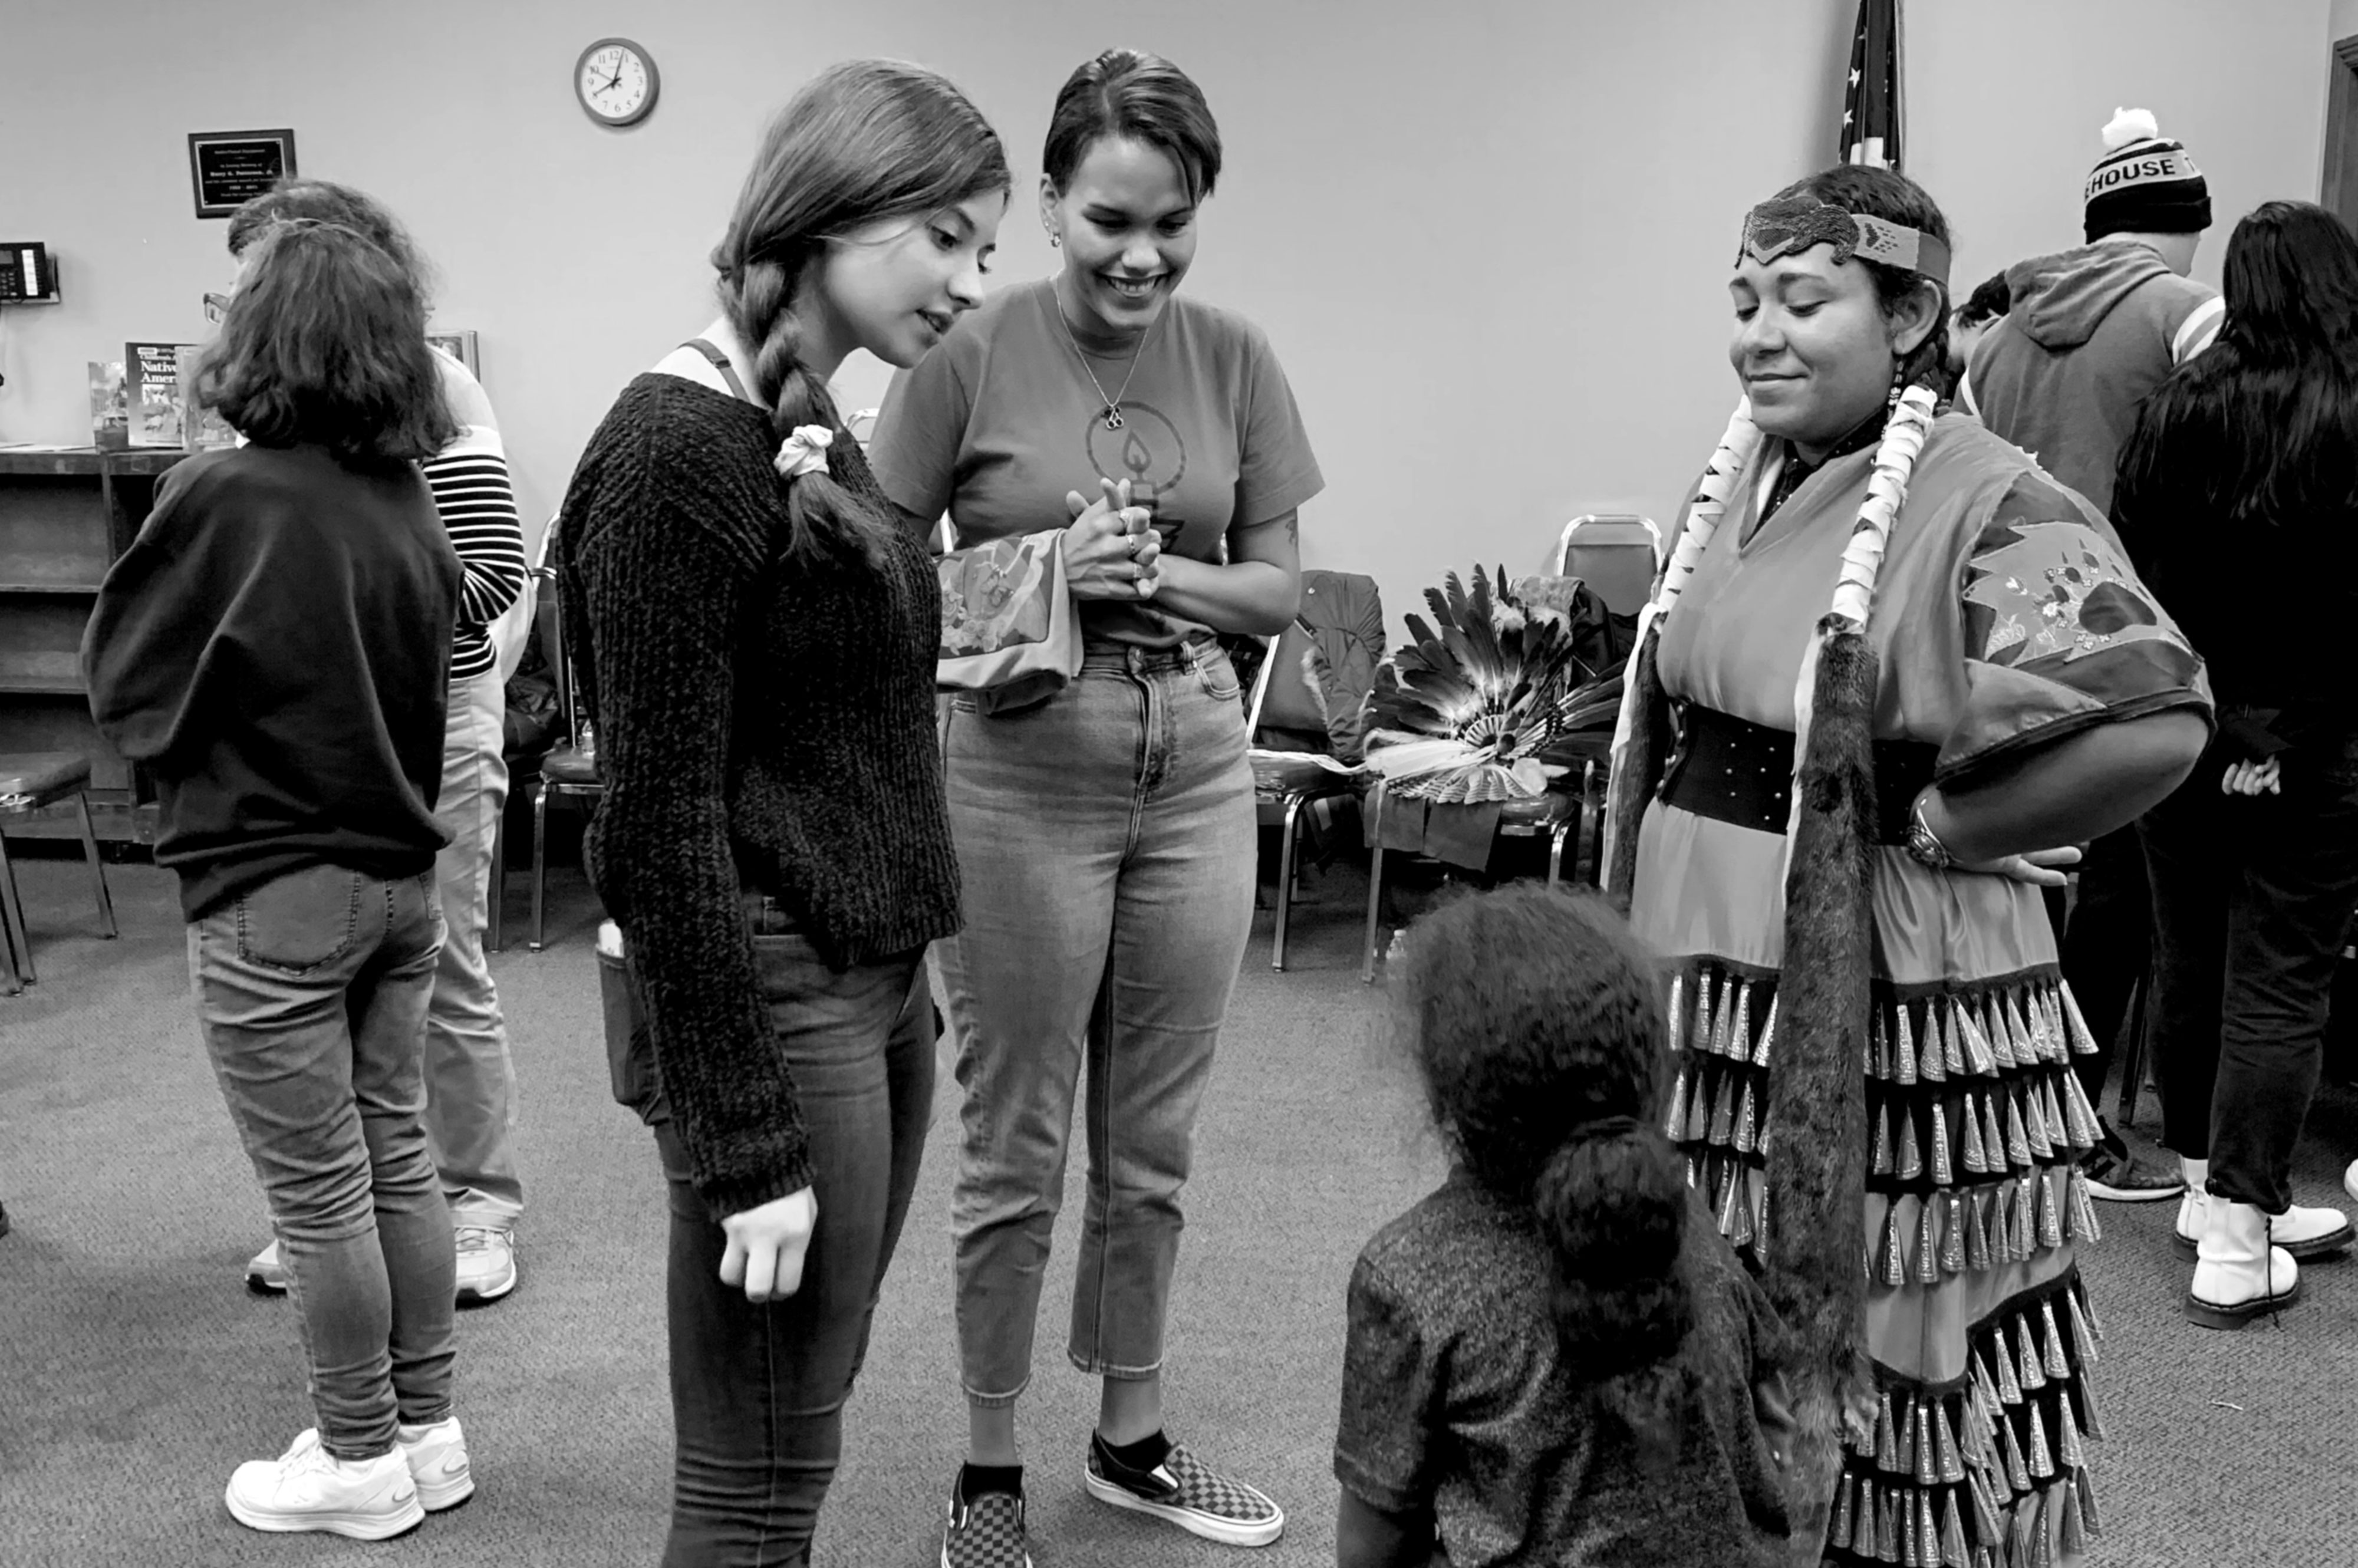 Students attend an event honoring Indigenous Peoples' Day